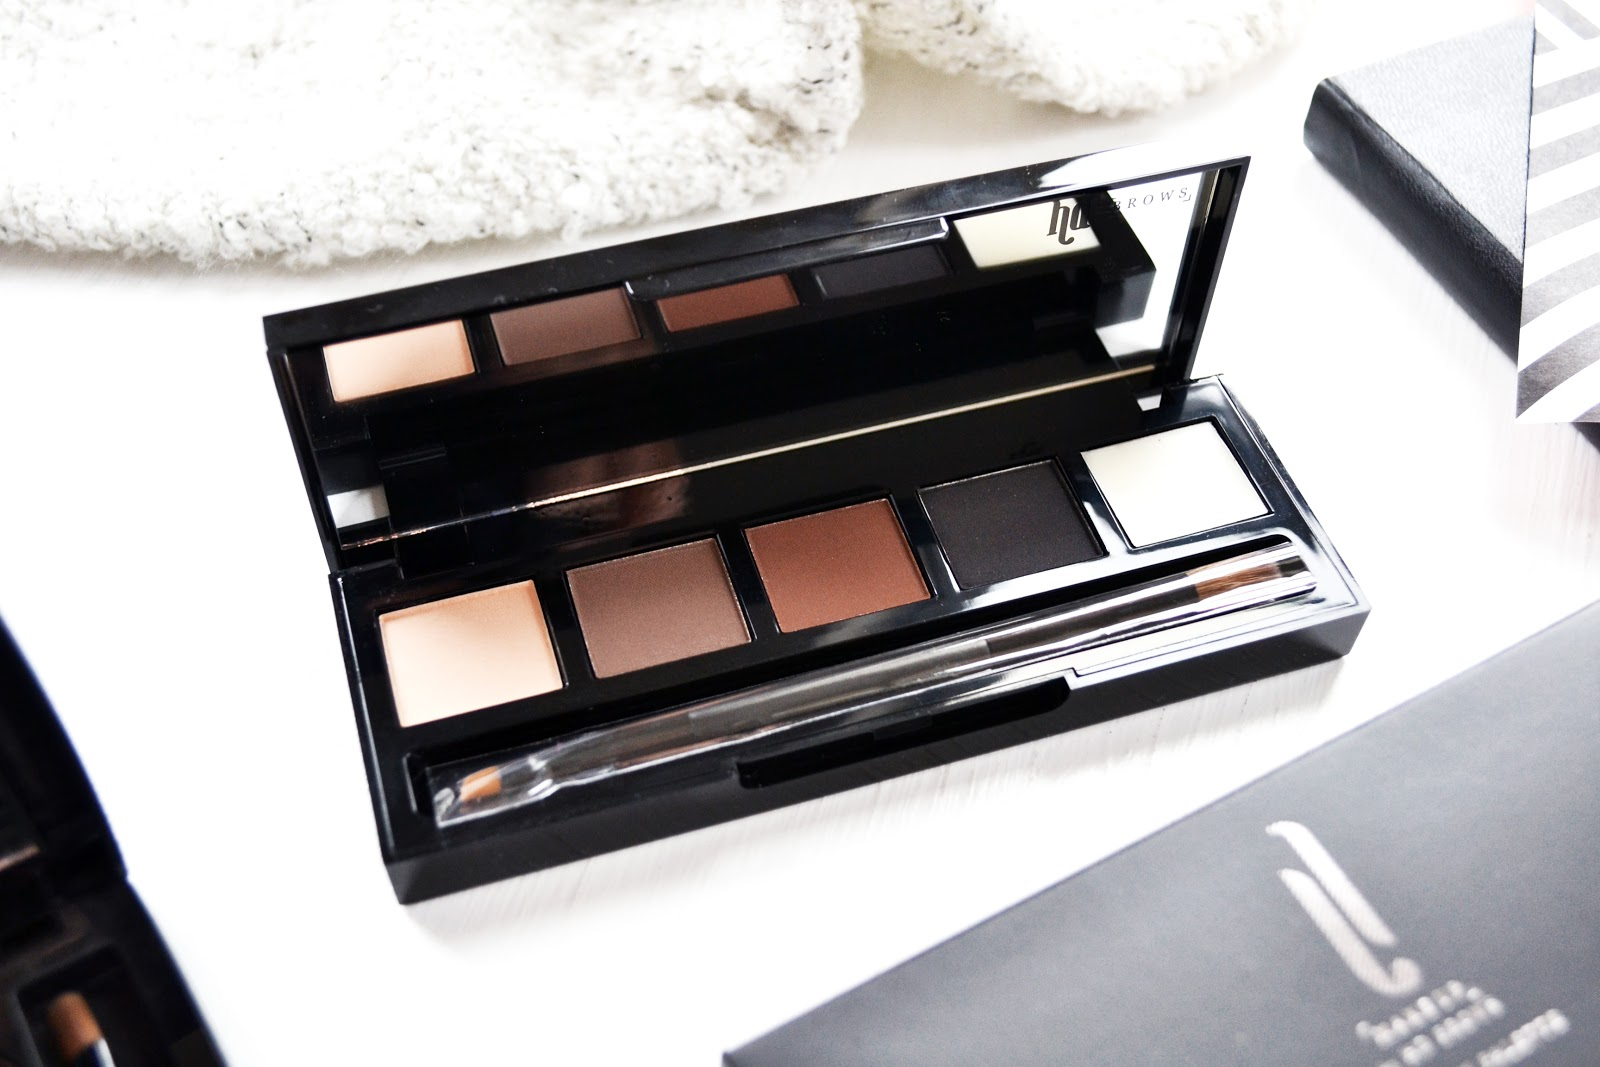 Hd brow kit, hd brow palette